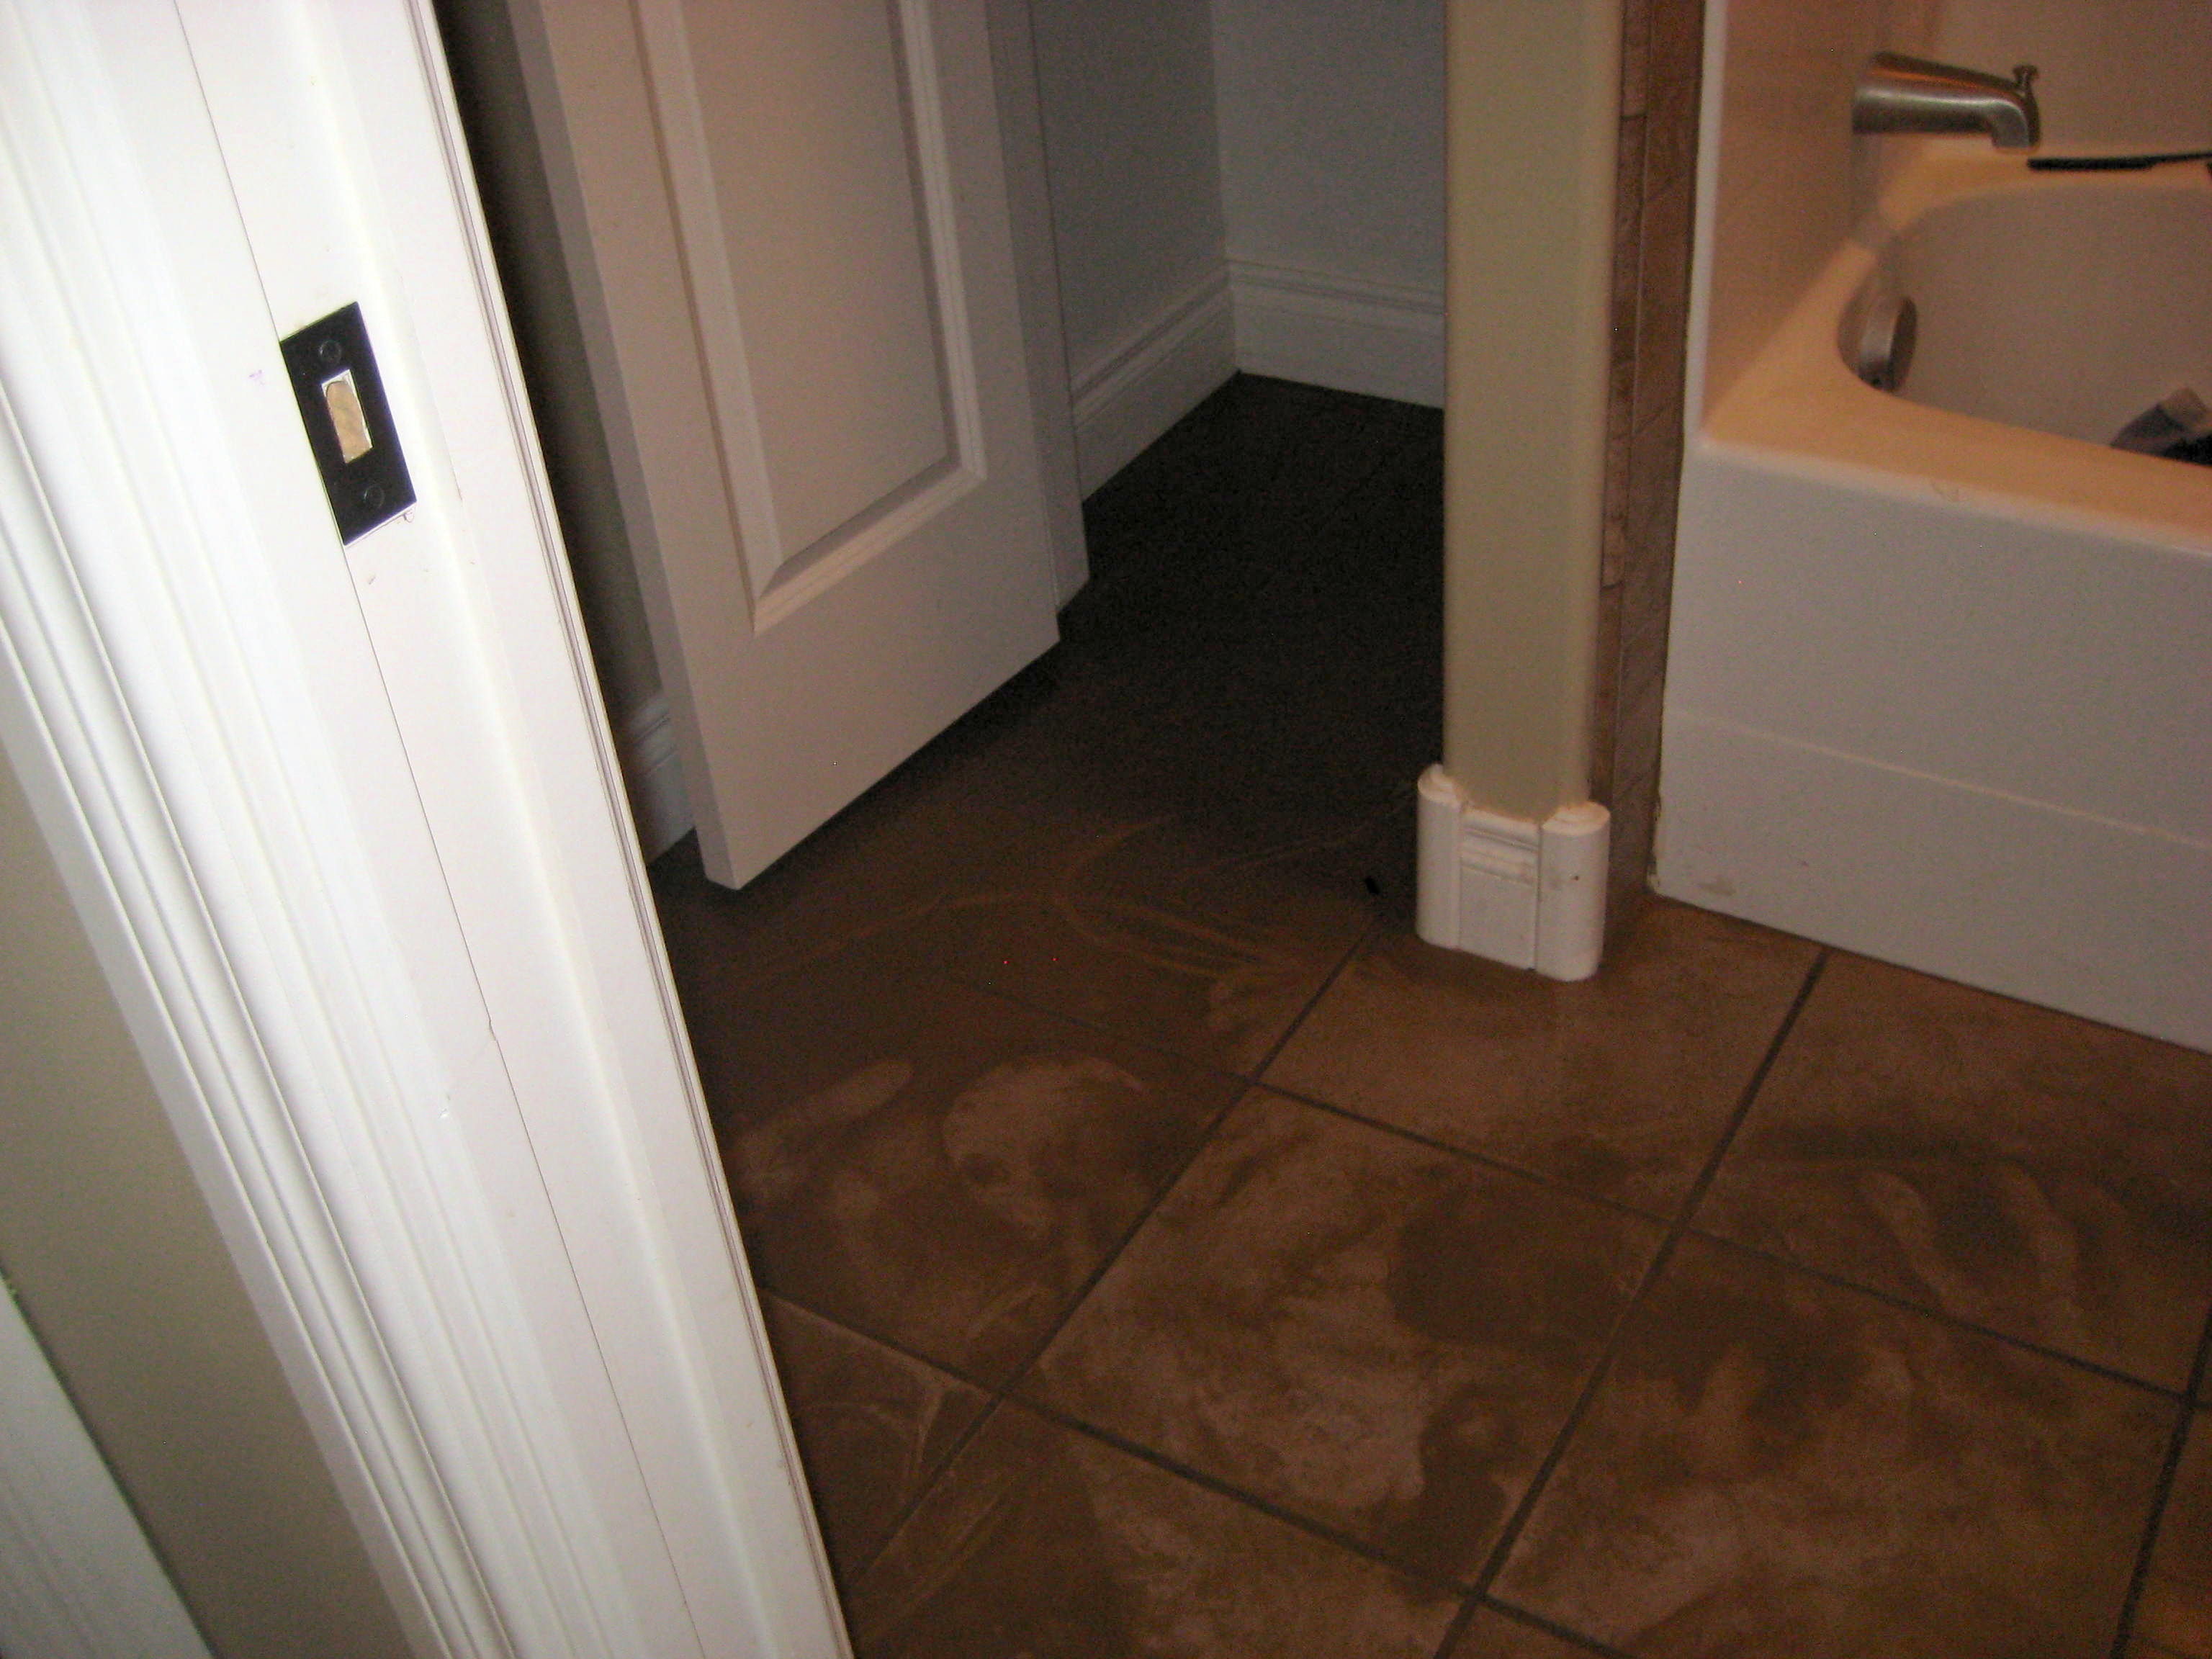 Bathroom Floor Repair Water Damage Bathroom Floor Repair